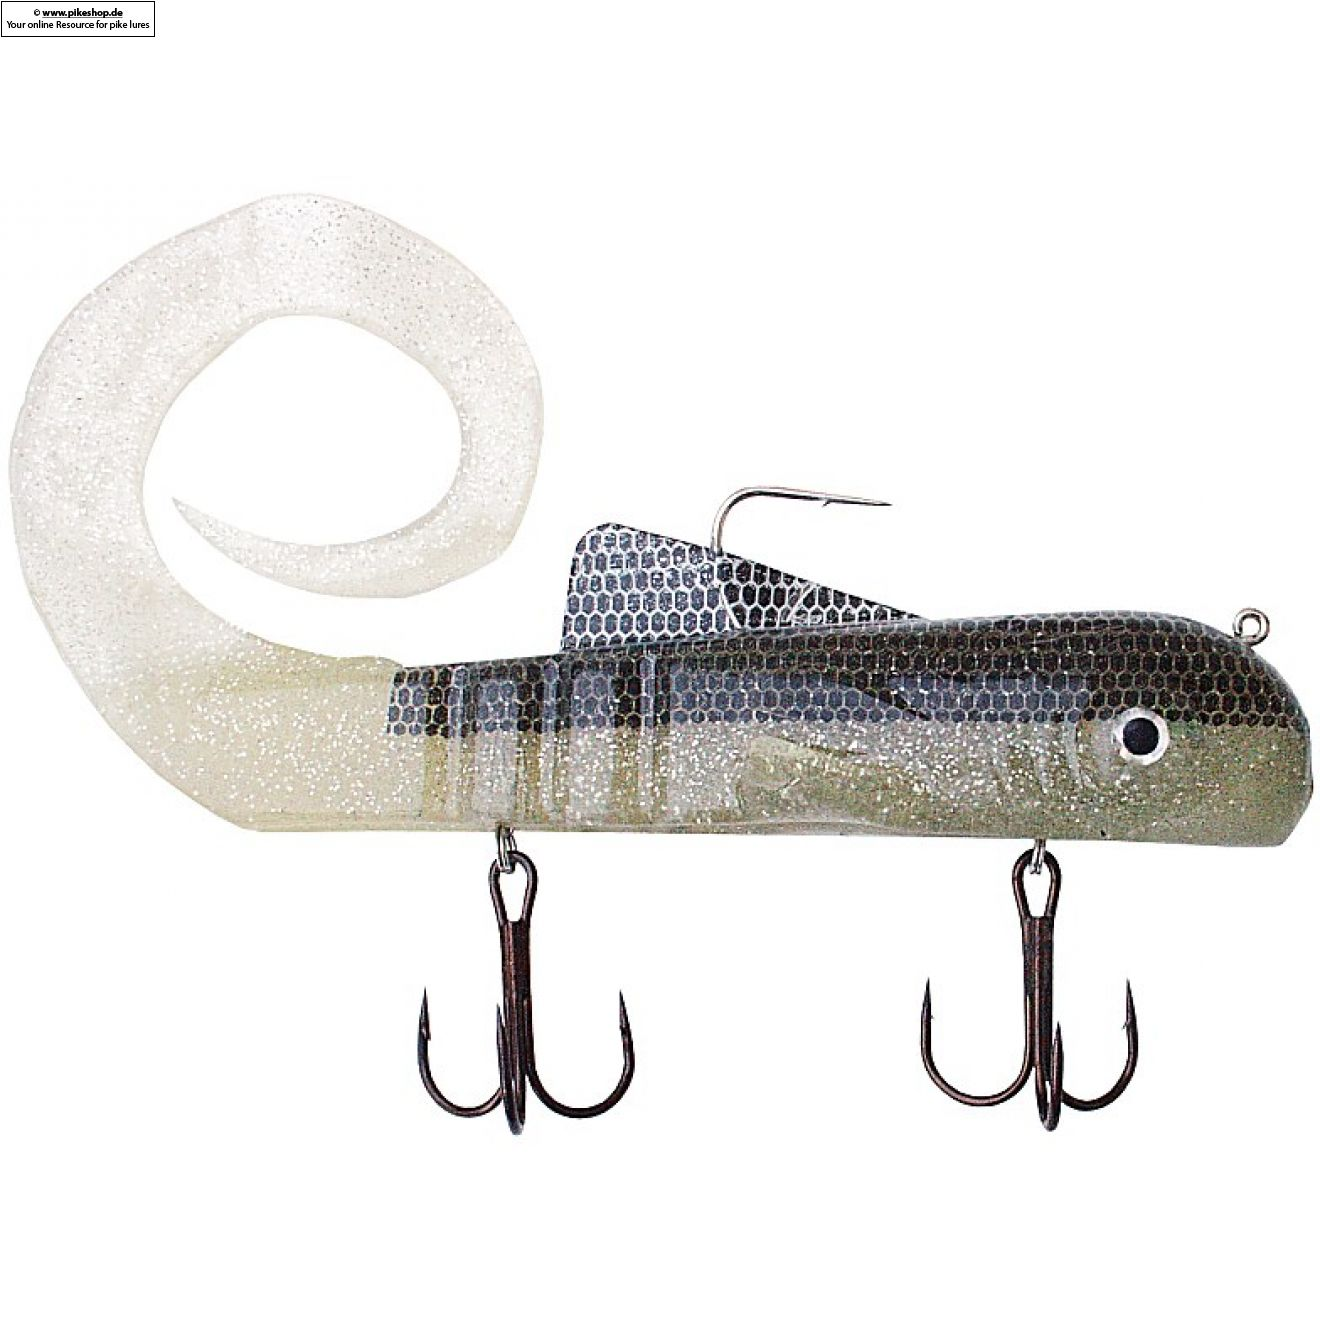 Custom Regular PRO Dawg - 23cm (9 Zoll) - MI Natural Bait Fish